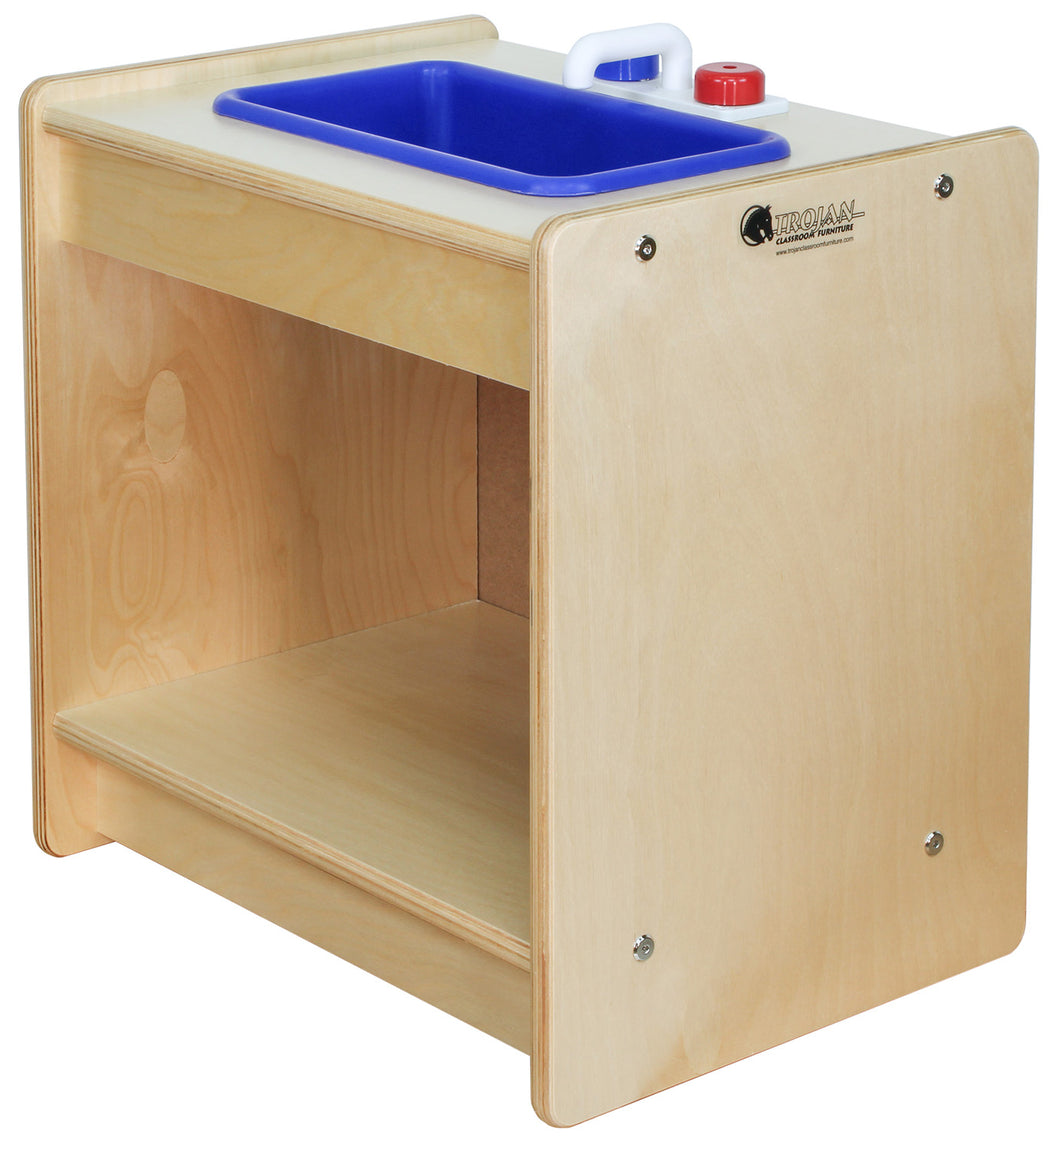 Toddler Sink (D382)